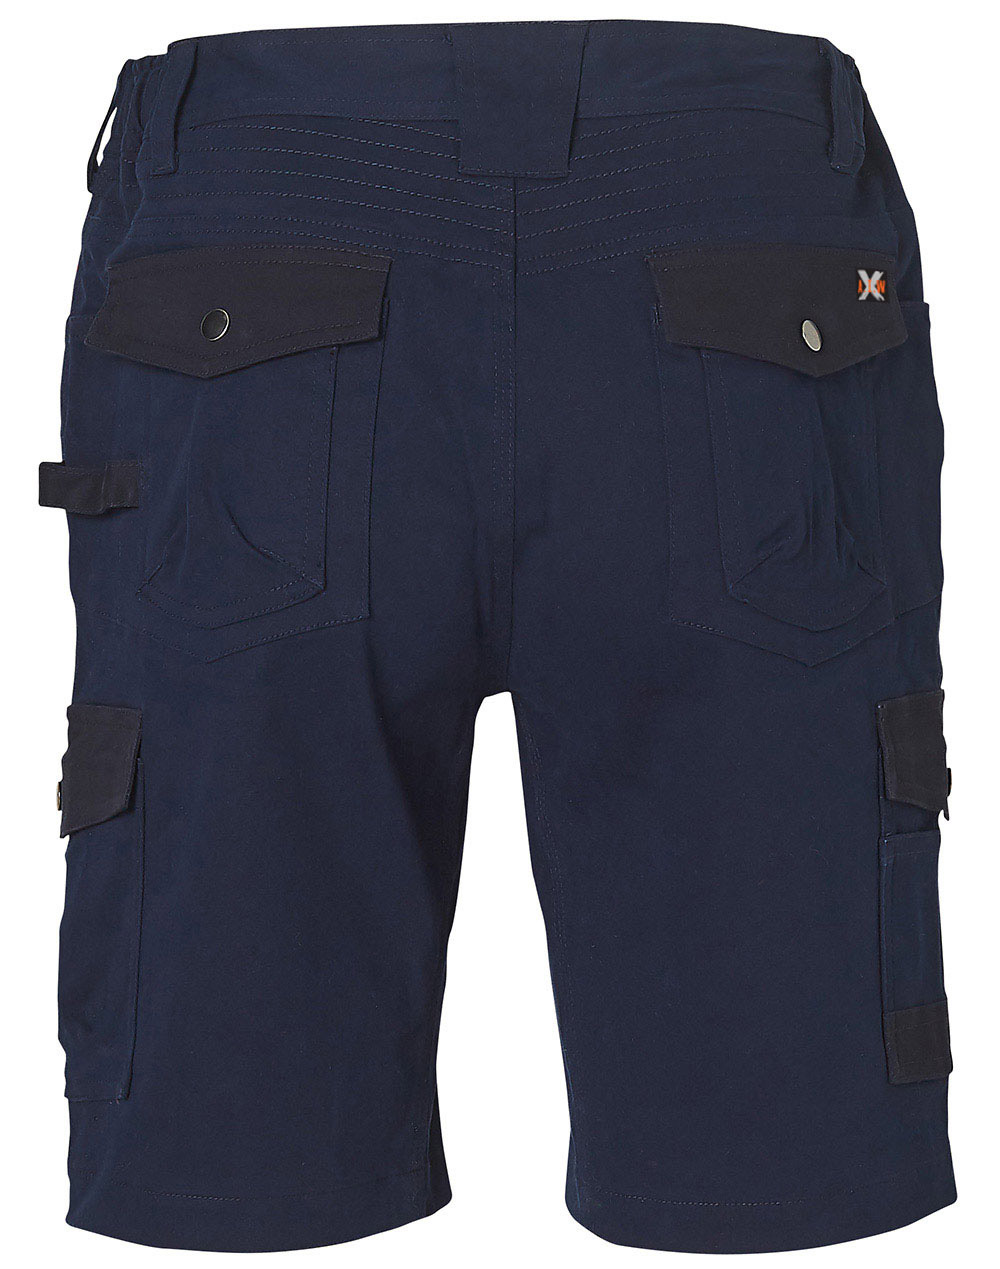 https://s3-ap-southeast-1.amazonaws.com/ws-imgs/WORKWEAR/WP23_Navy_Back.jpg